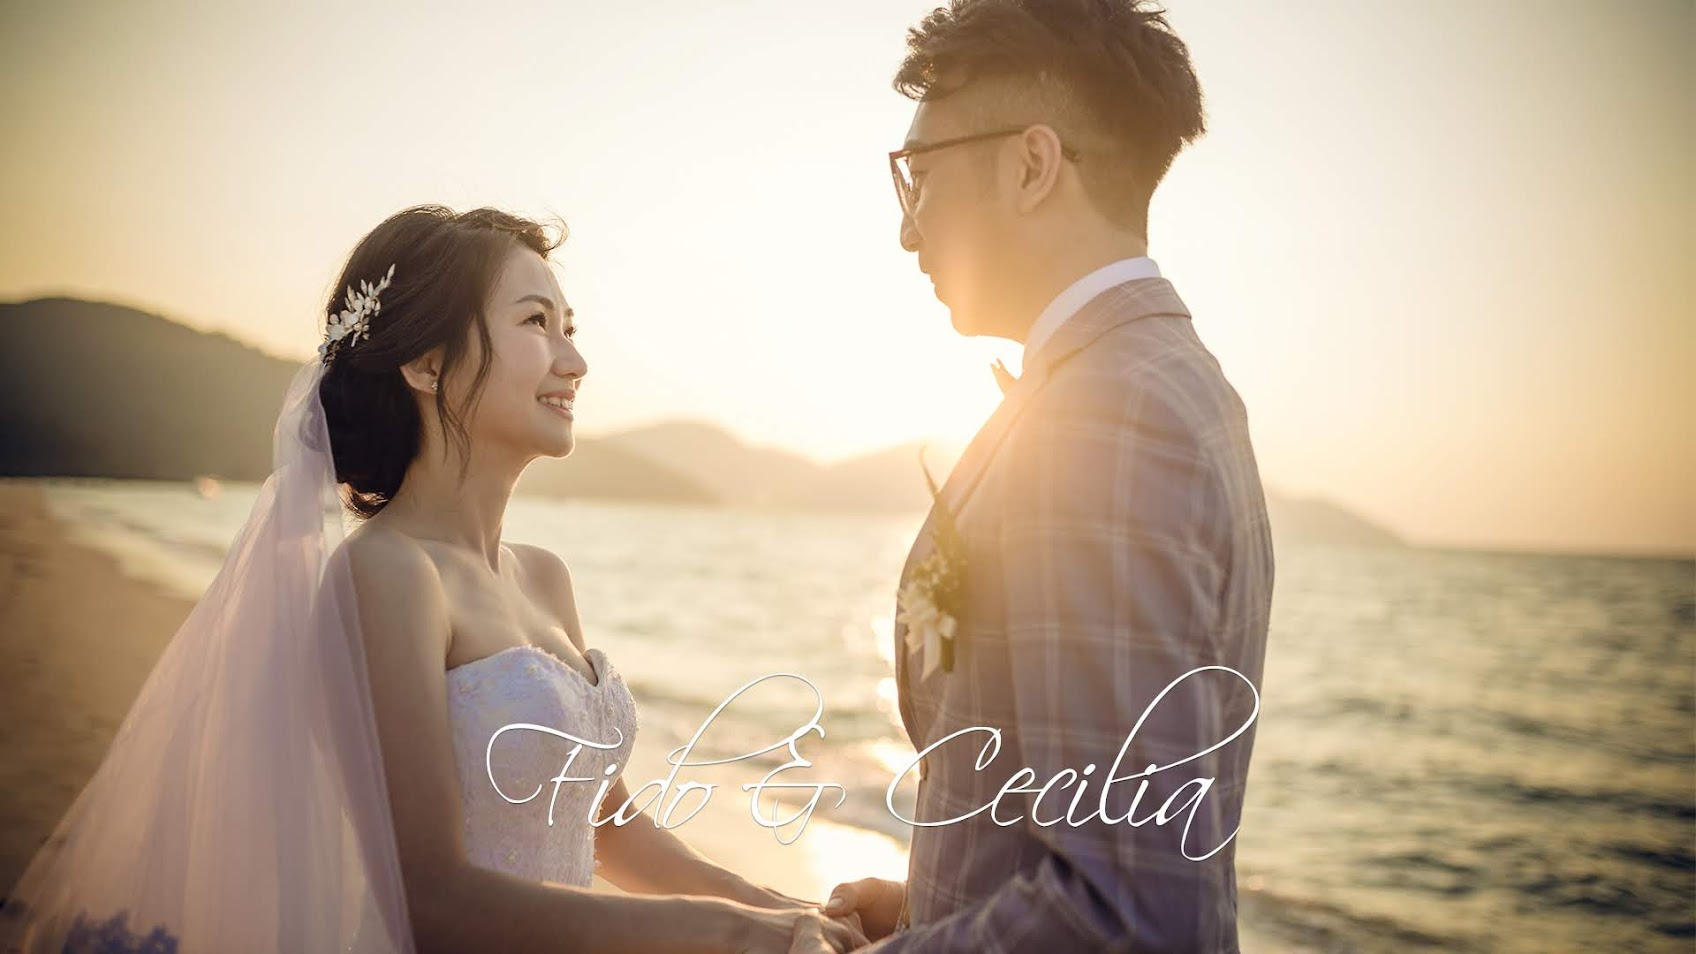 Fido & Cecilia Garden Wedding Videography at Park Royal Penang